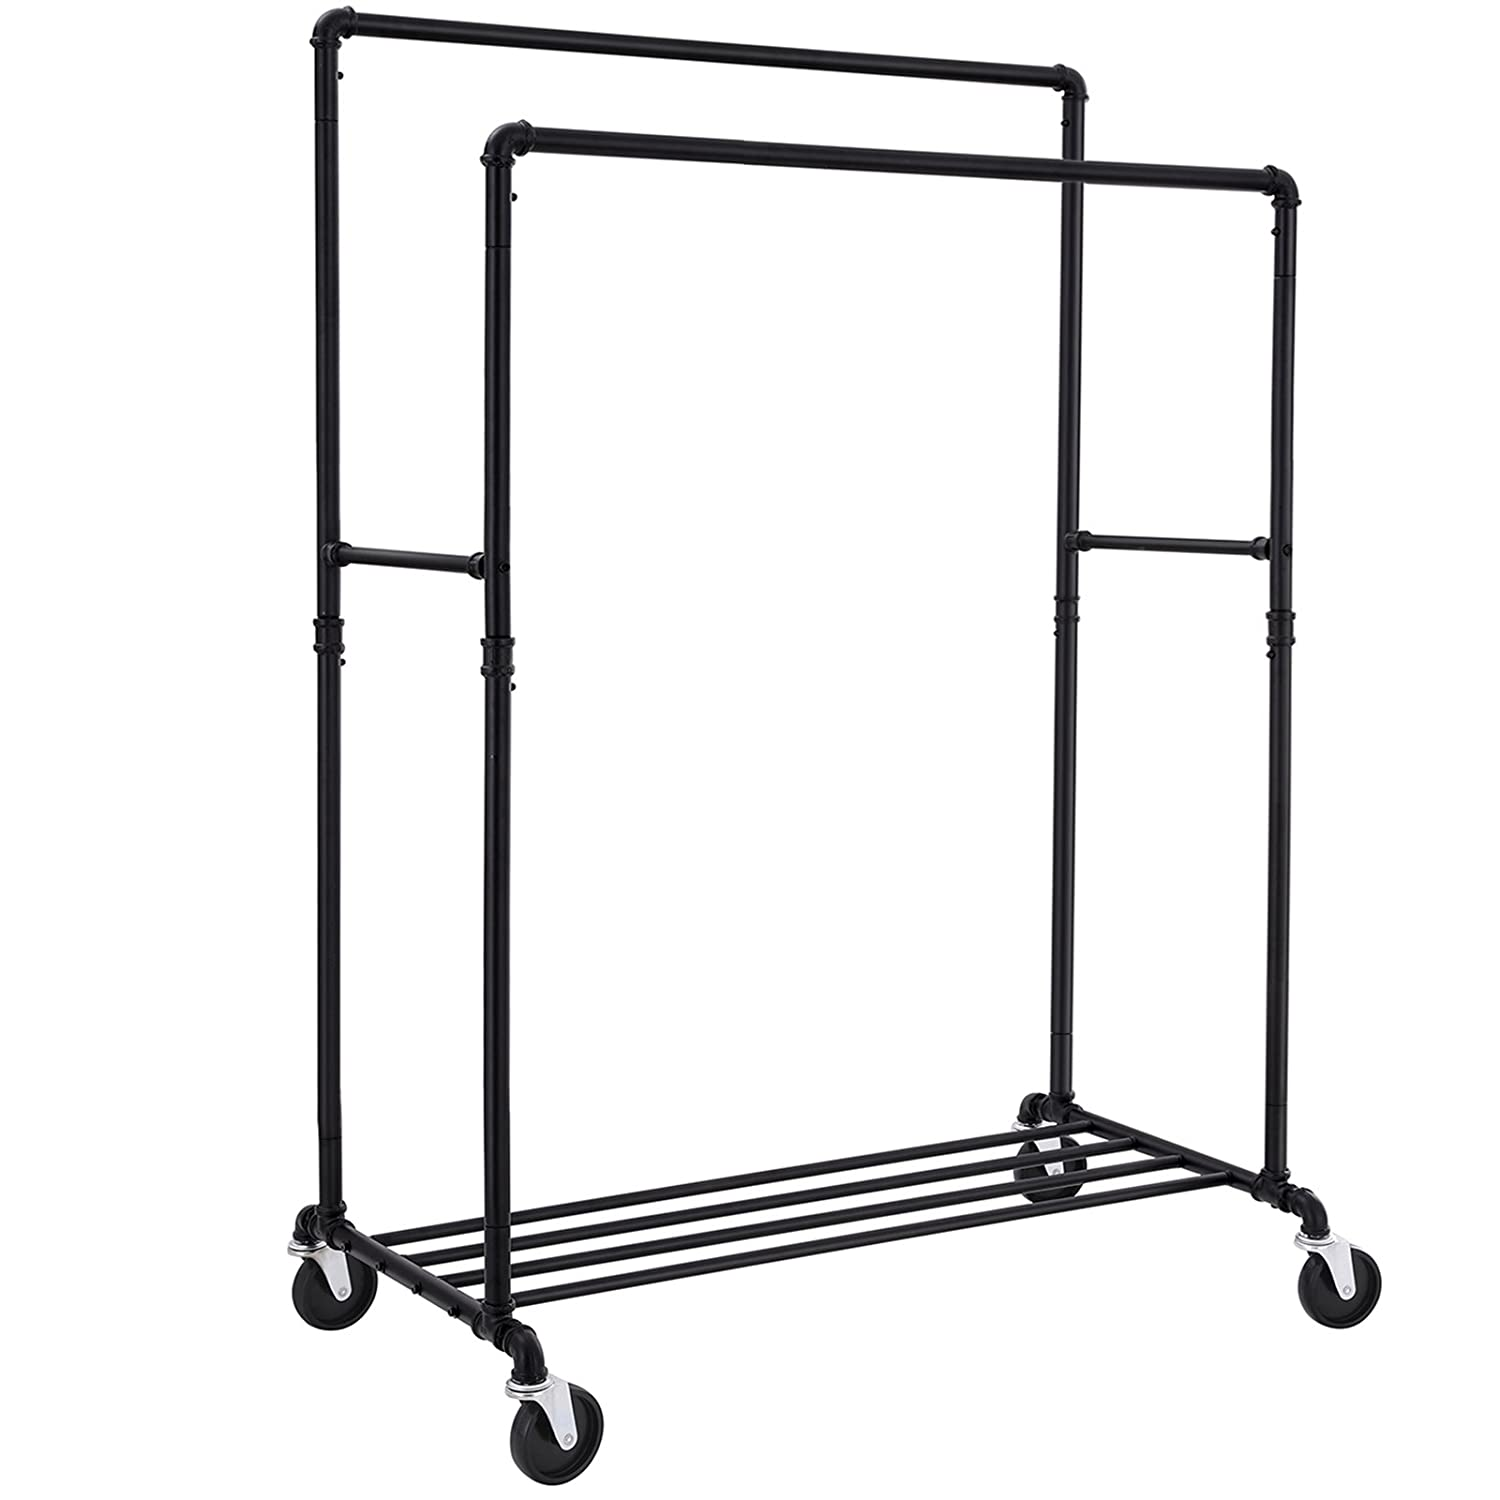 SONGMICS Industrial Pipe Clothes Rack Double Rail on Wheels with Commercial Grade Clothing Hanging Rack Organizer for Garment Storage Display, Black ...